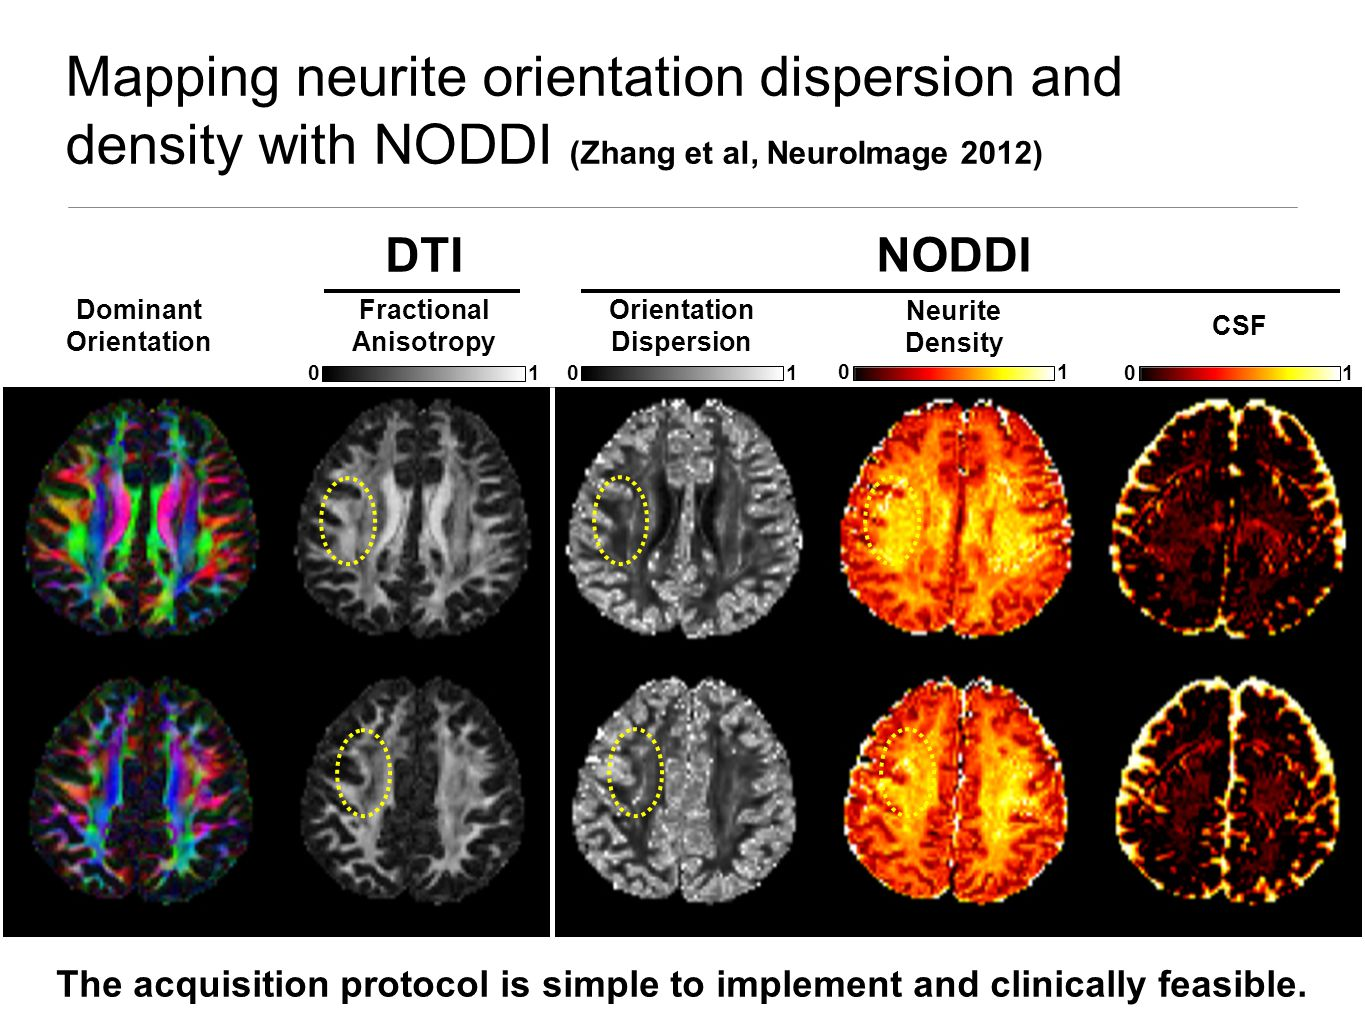 Mapping neurite orientation dispersion and density with NODDI (Zhang et al, NeuroImage 2012) Orientation Dispersion 01 Neurite Density 01 CSF 01 01 Fractional Anisotropy Dominant Orientation DTI NODDI The acquisition protocol is simple to implement and clinically feasible.